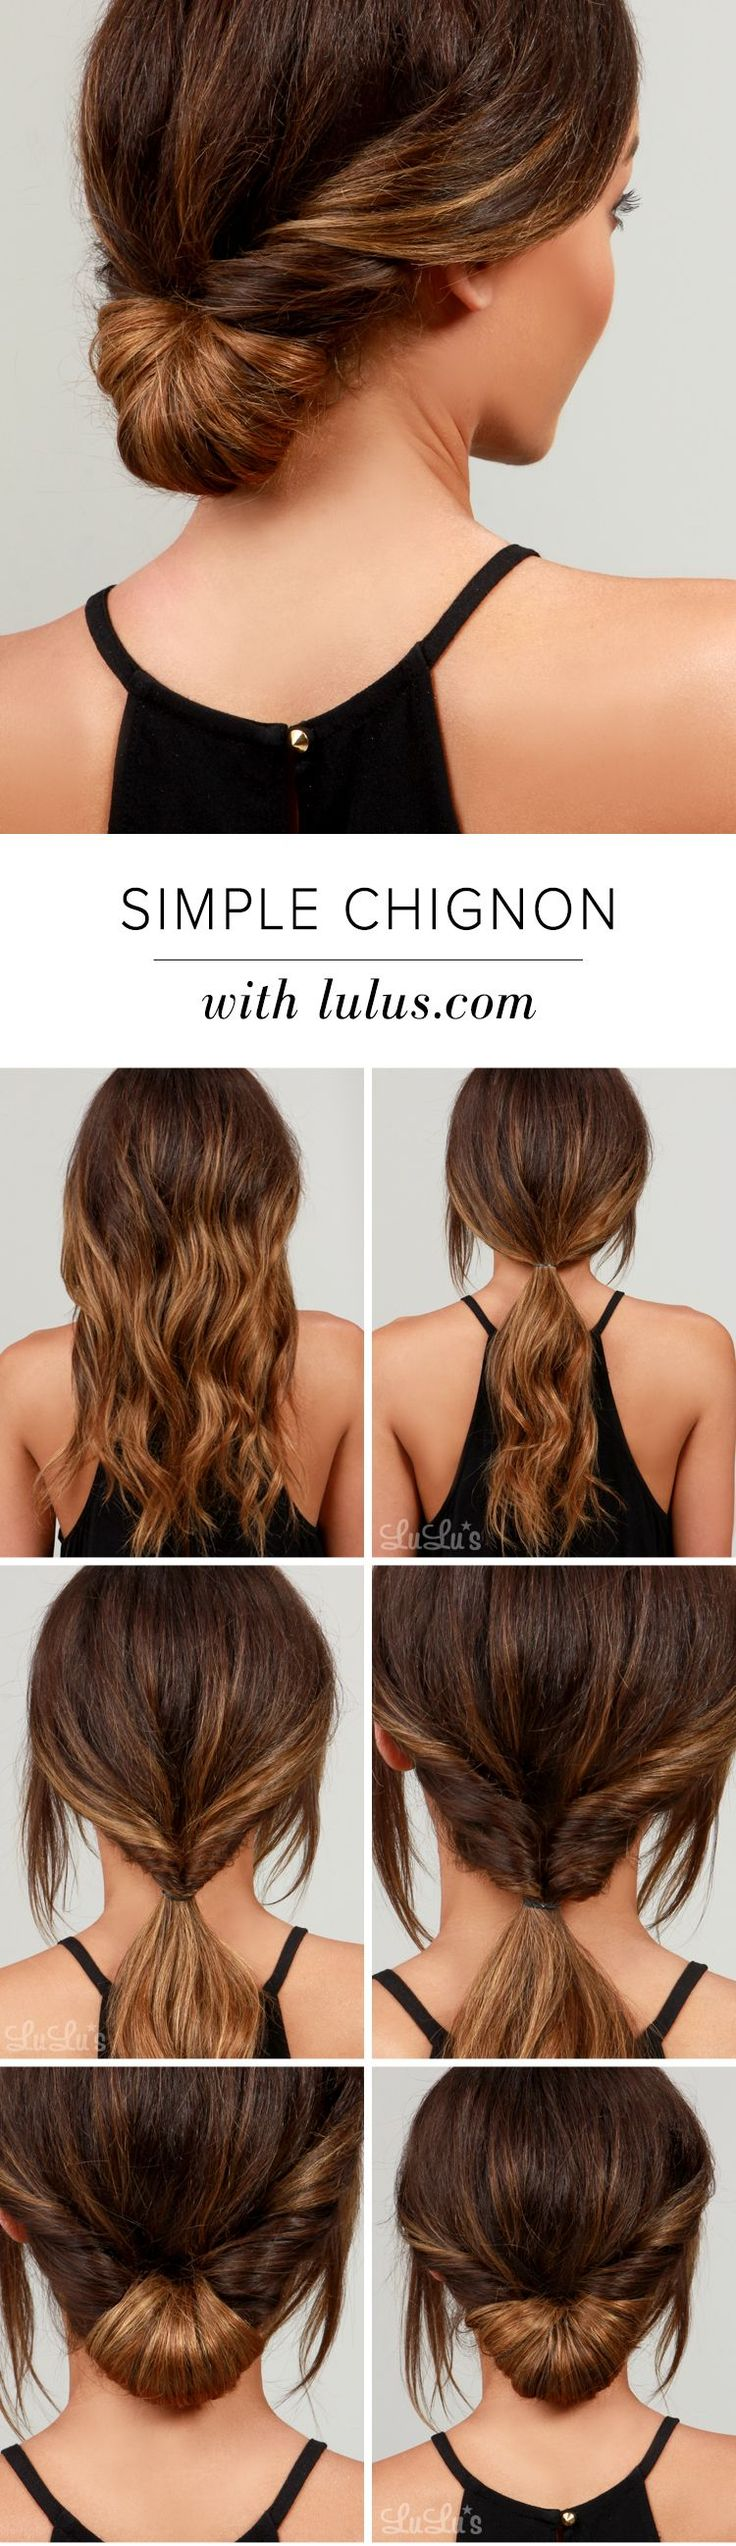 Superb 1000 Ideas About Easy Updo On Pinterest Easy Updo Hairstyles Short Hairstyles Gunalazisus